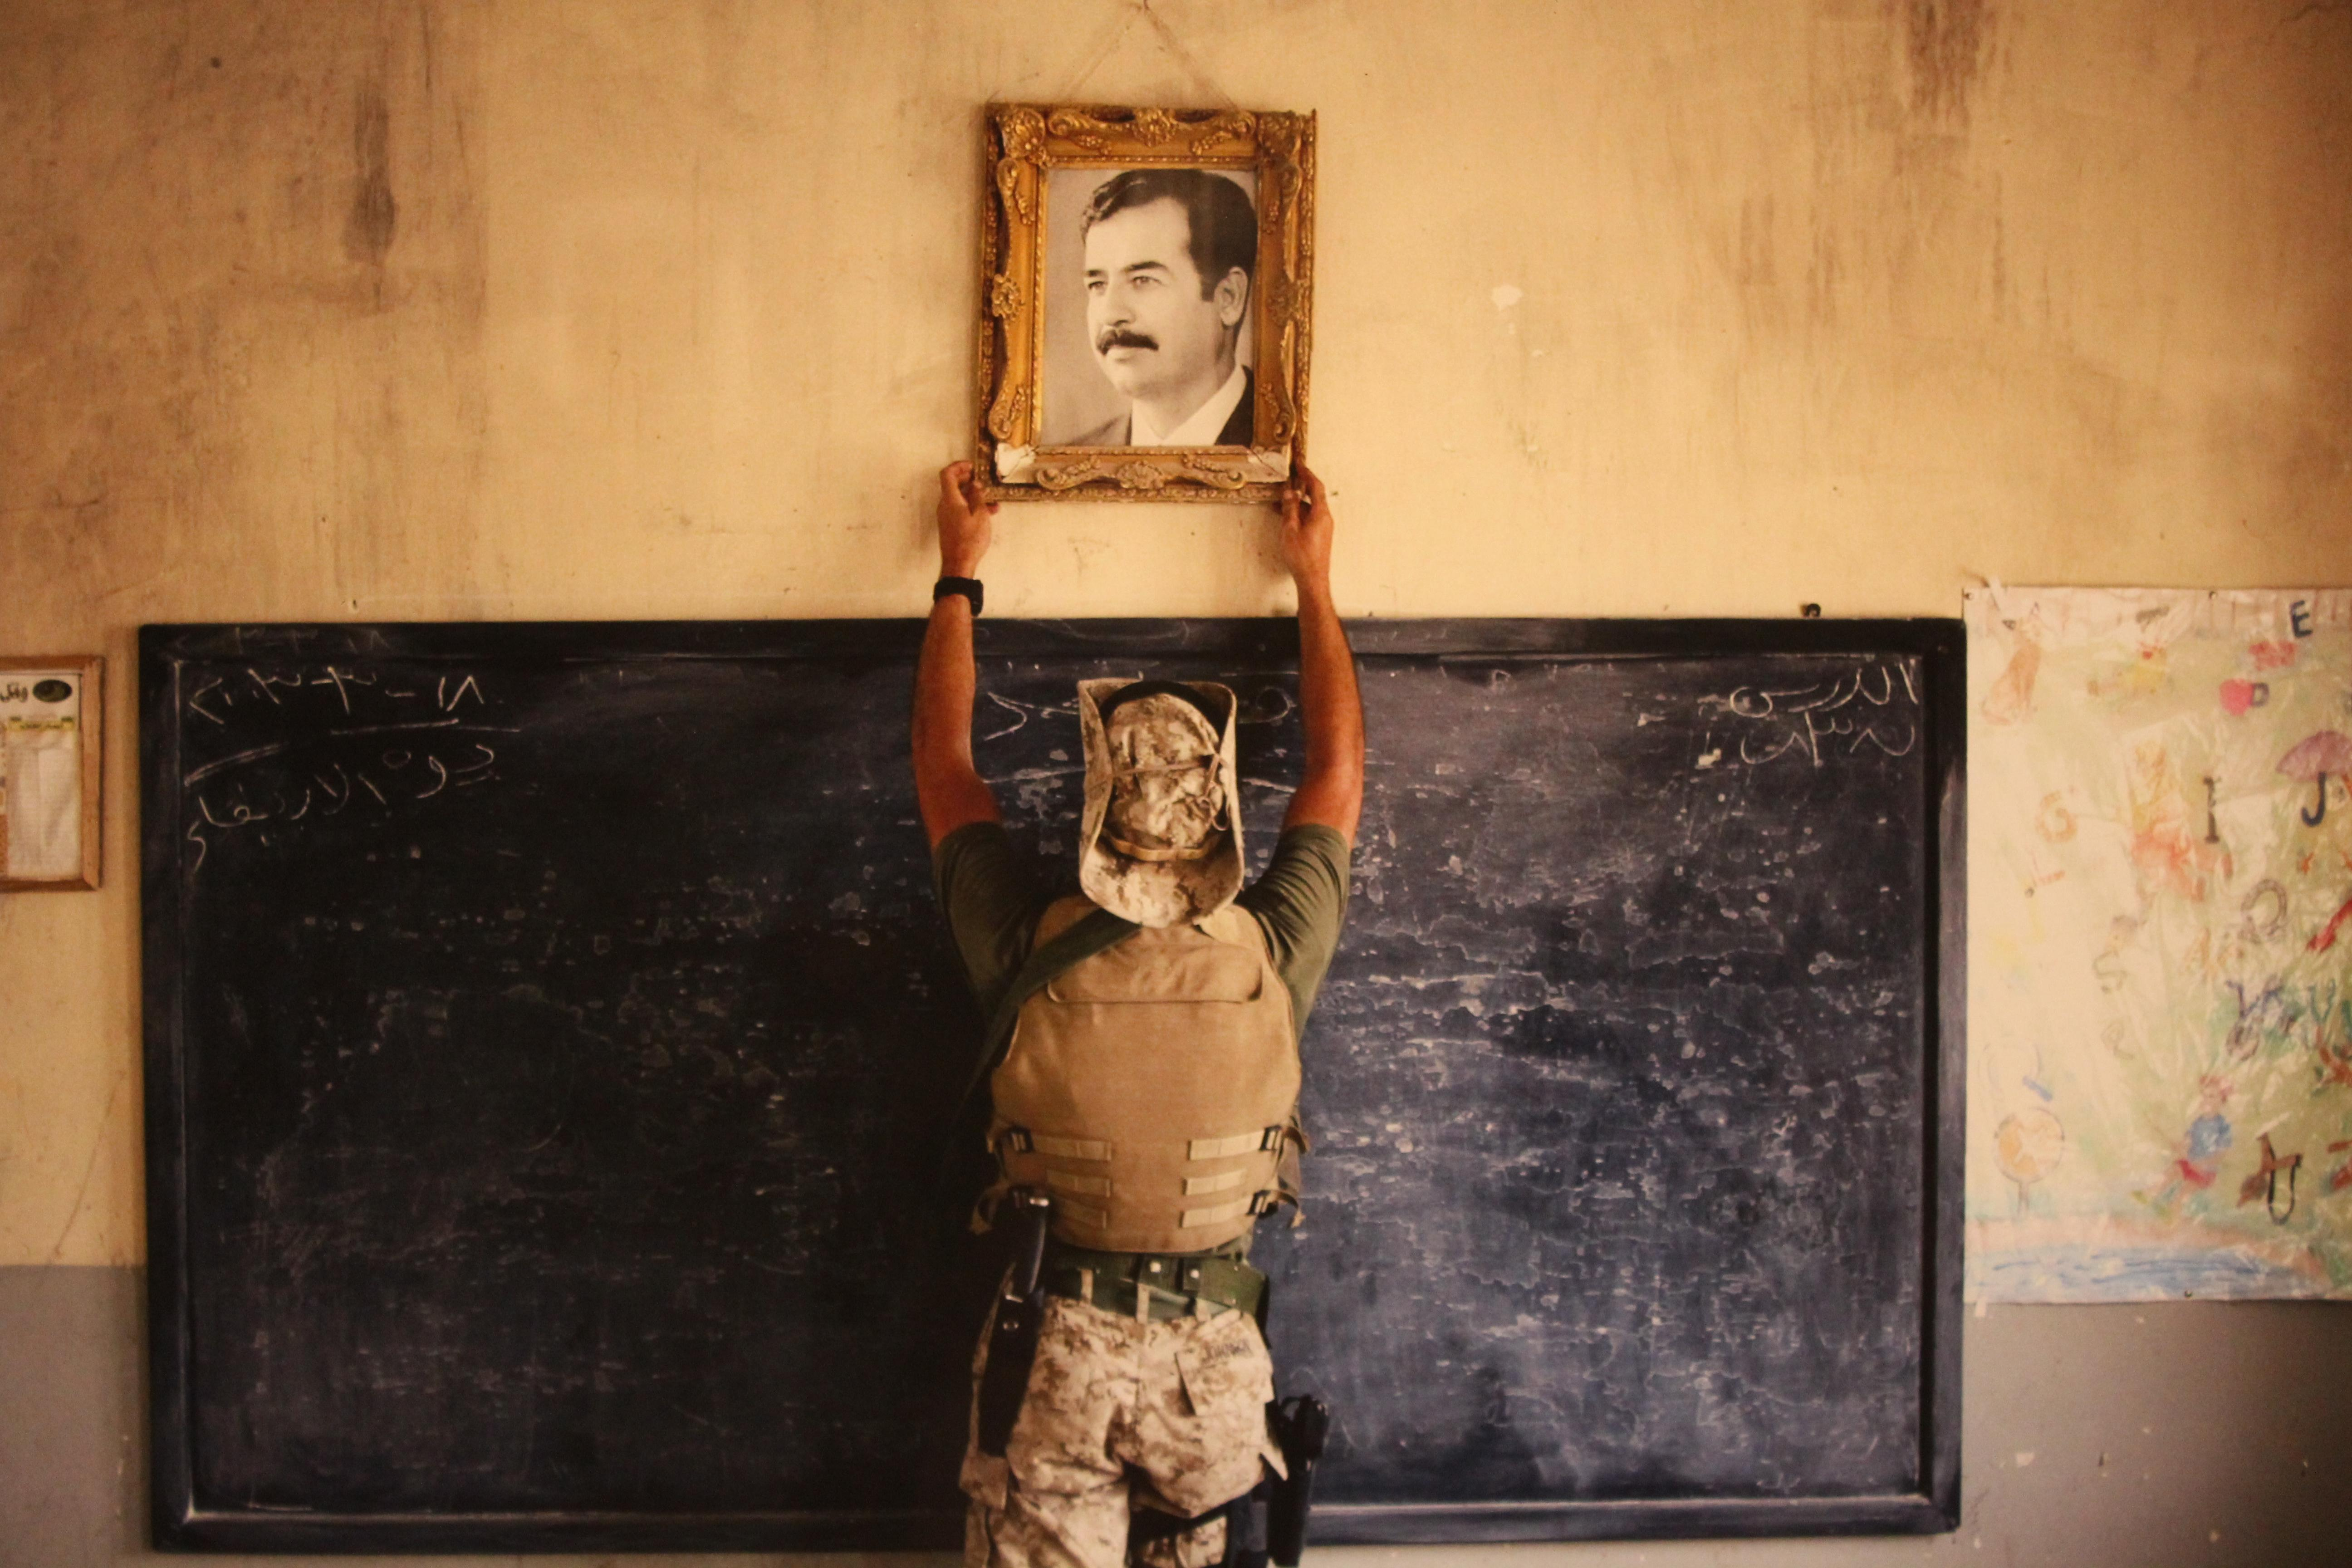 <p>A U.S. Marine pulls down a picture of Saddam Hussein at a school April 16, 2003 in Al-Kut, Iraq. A combination team of Marines, Army and Special Forces went to schools and other facilities in Al-Kut looking for weapons caches and unexploded bombs in preparation for removing and neutralizing them. </p>